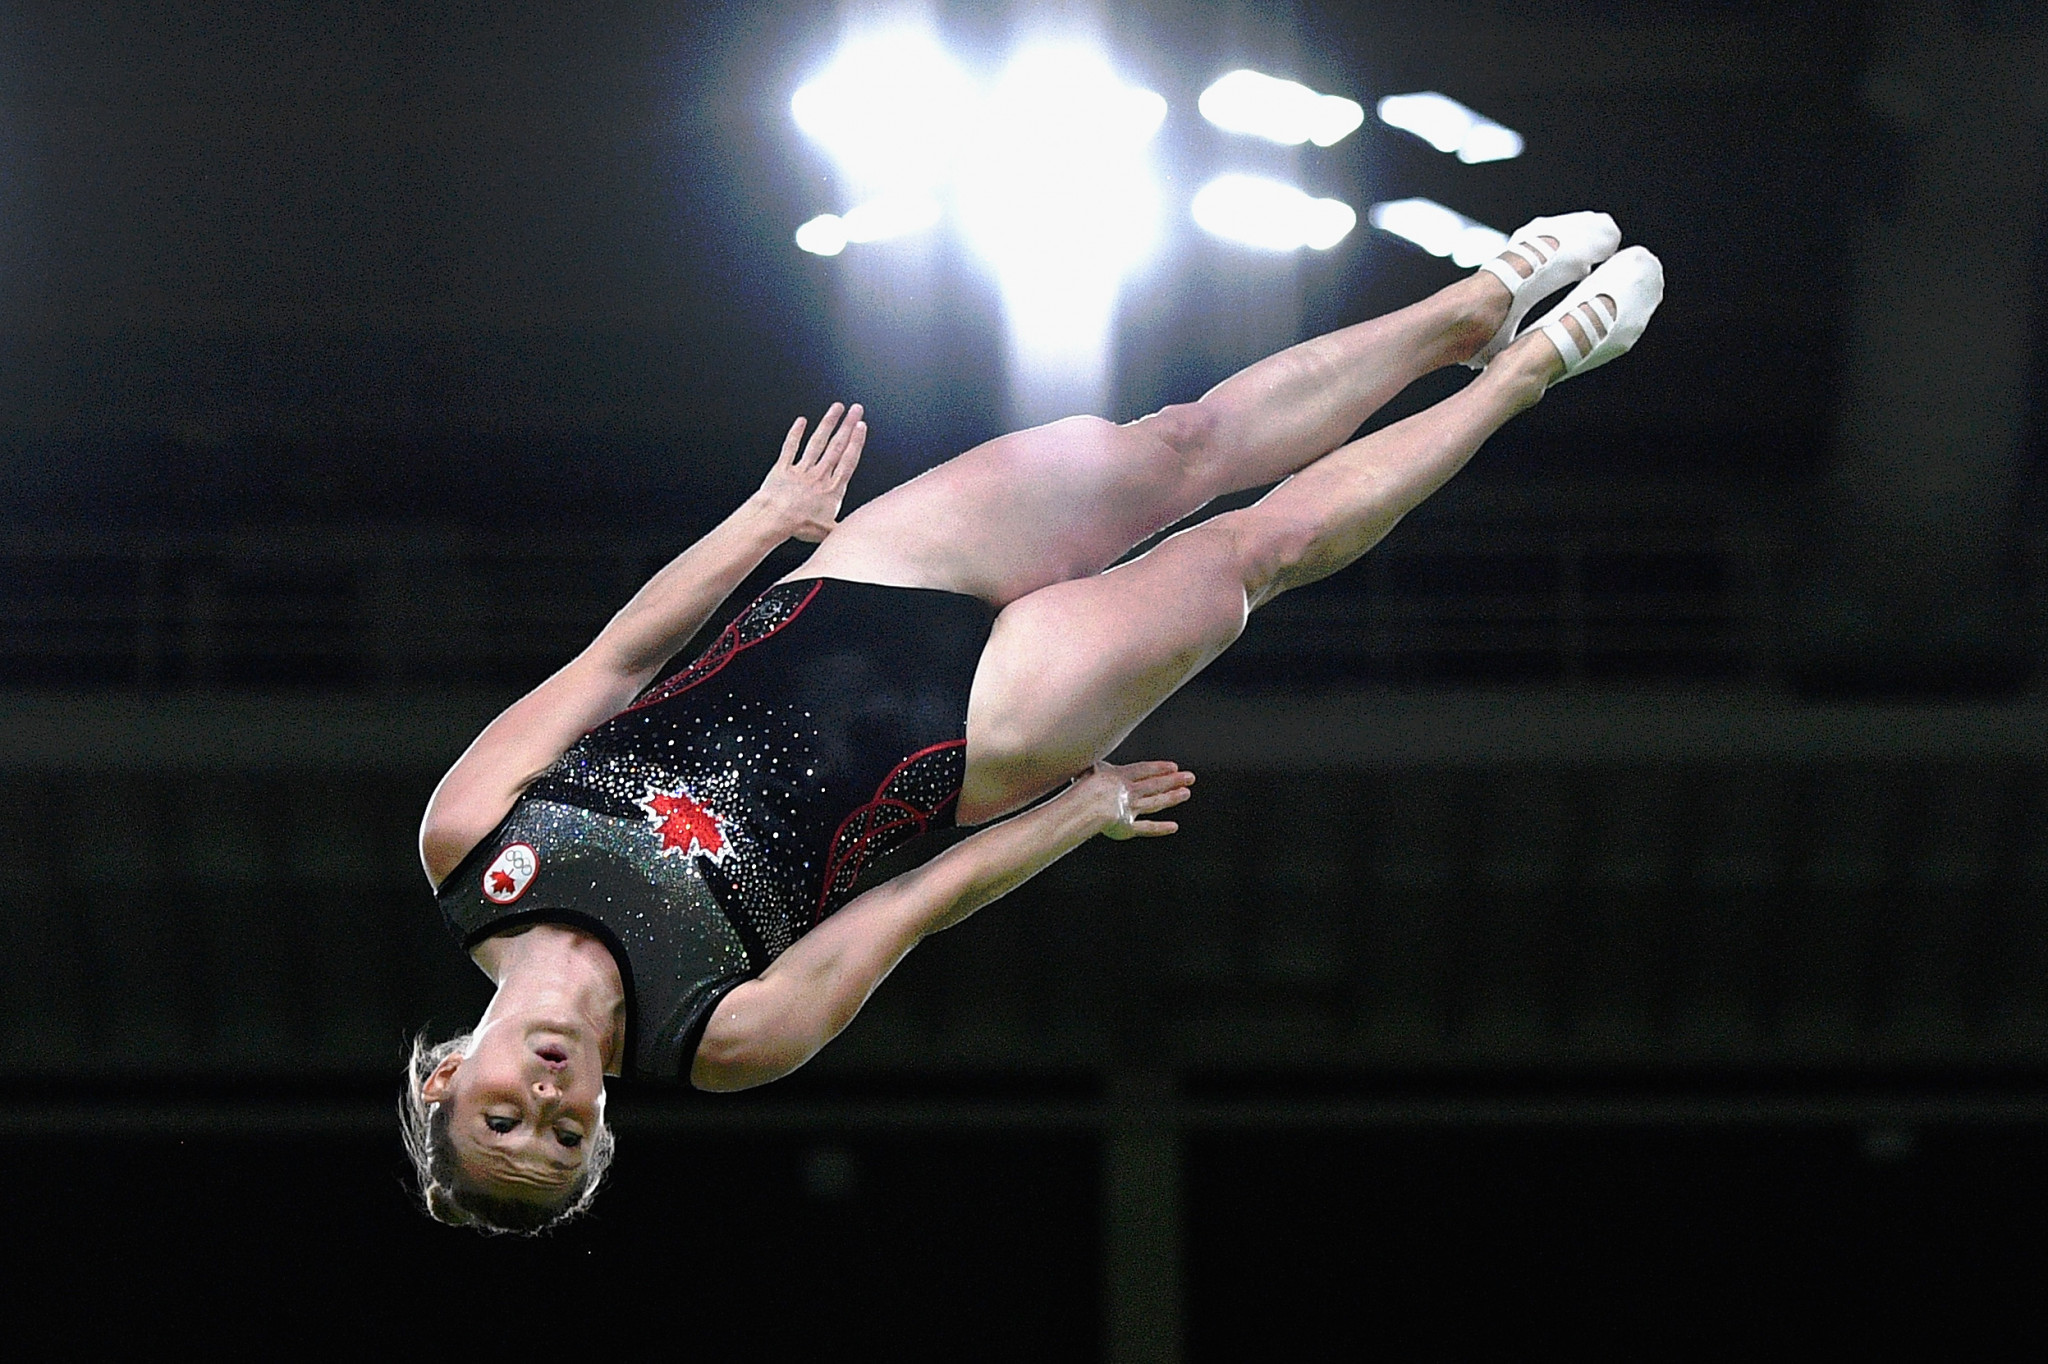 Canada's double Olympic gold medallist Rosannagh MacLennan will be competing in the women's event at the FIG Trampoline World Cup in Minsk ©Getty Images